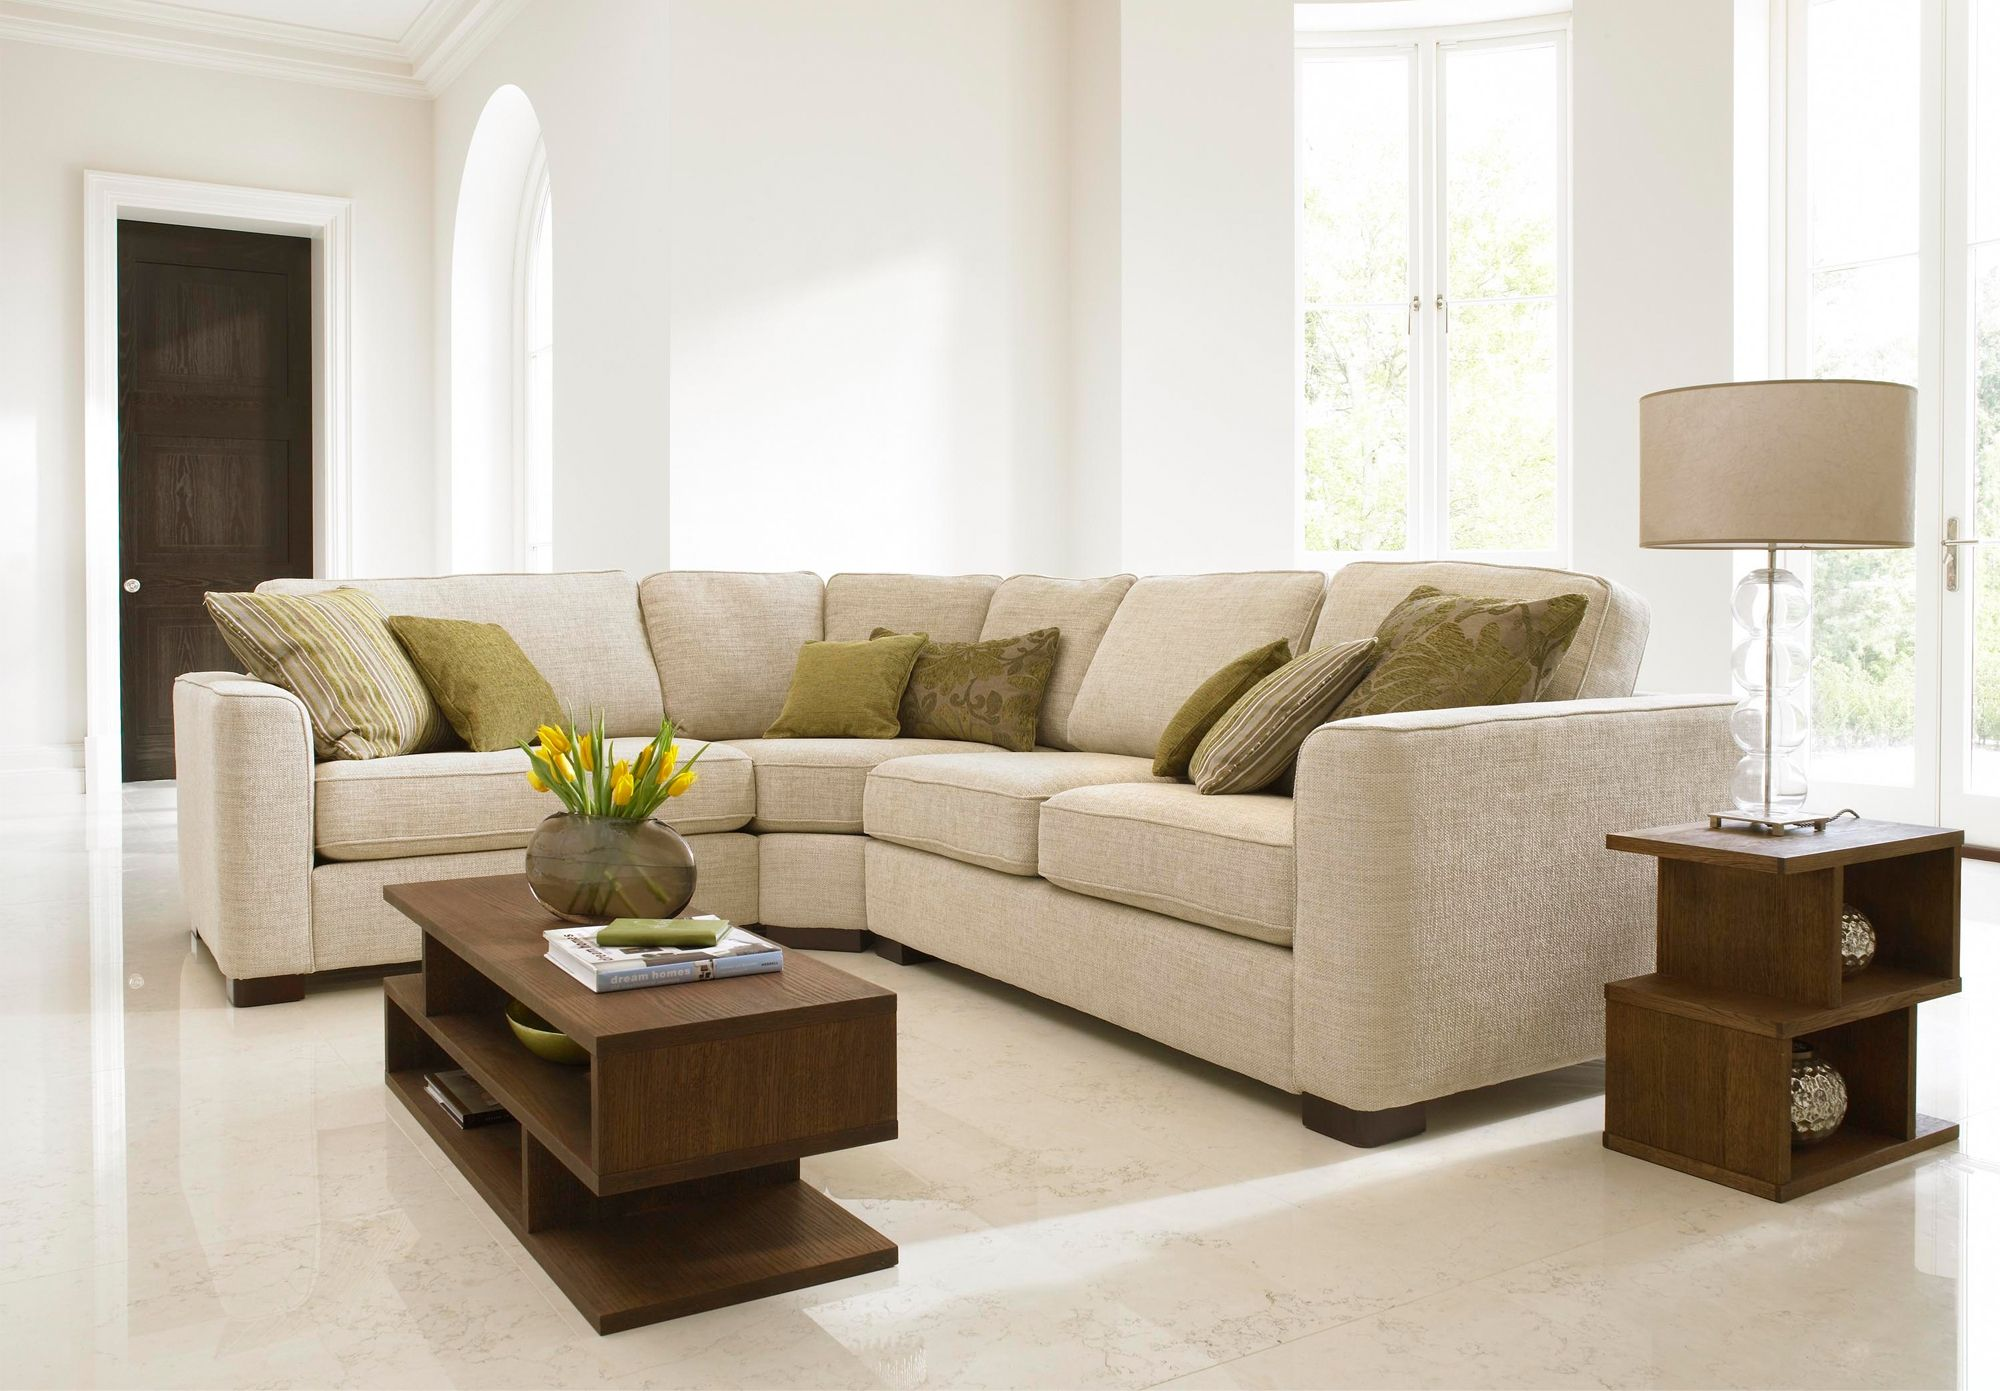 Rfvglr50 Ideas Here Remarkable Furniture Village Gorgeous Living Room Collection 5616